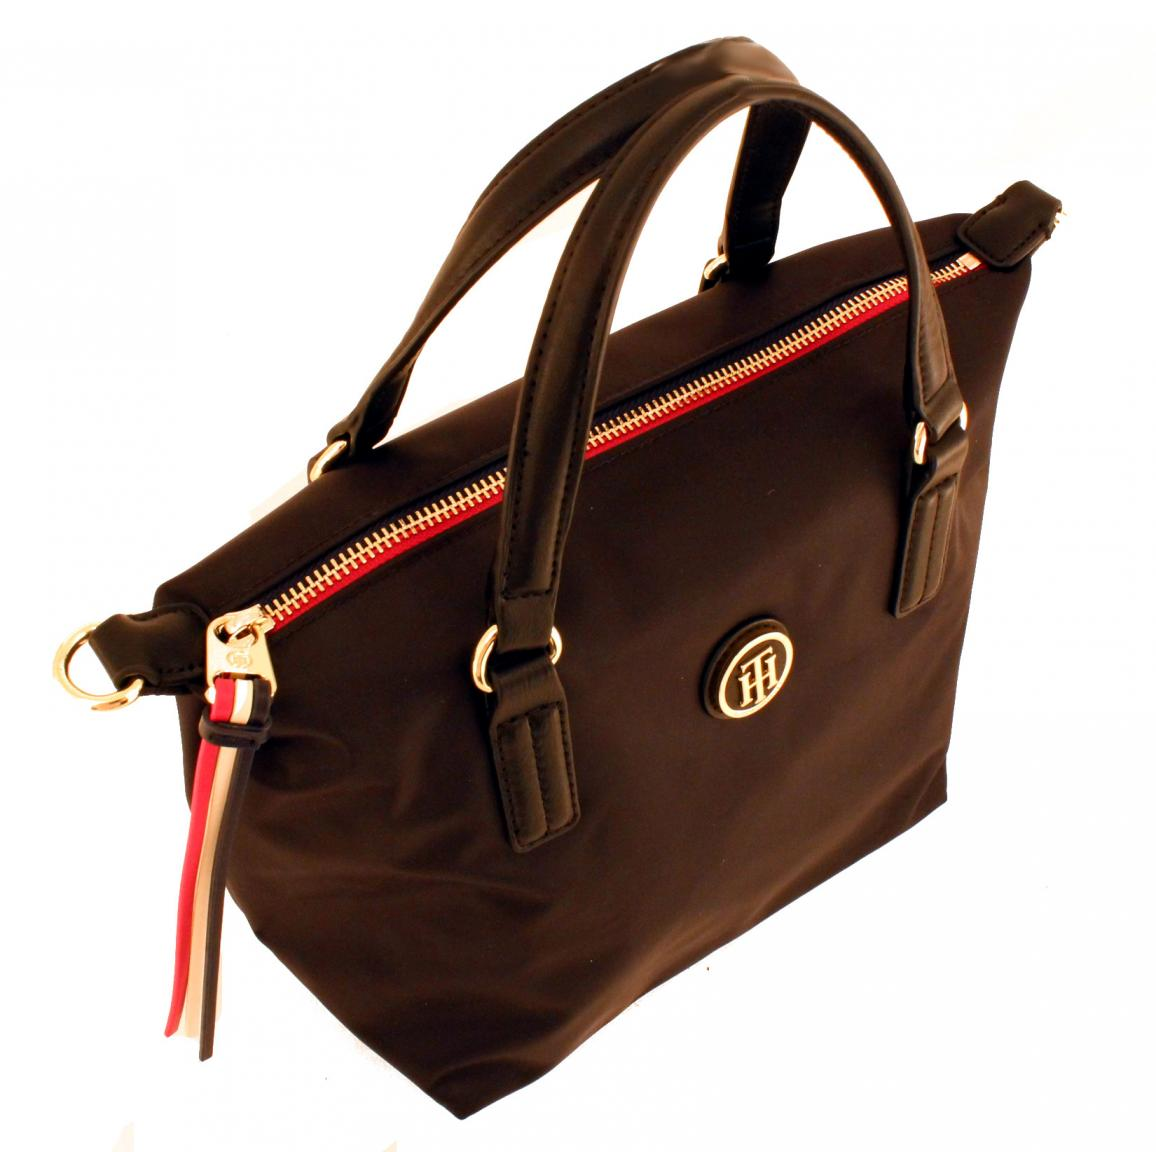 Handtasche Tommy Hilfiger Poppy Small Tote rot